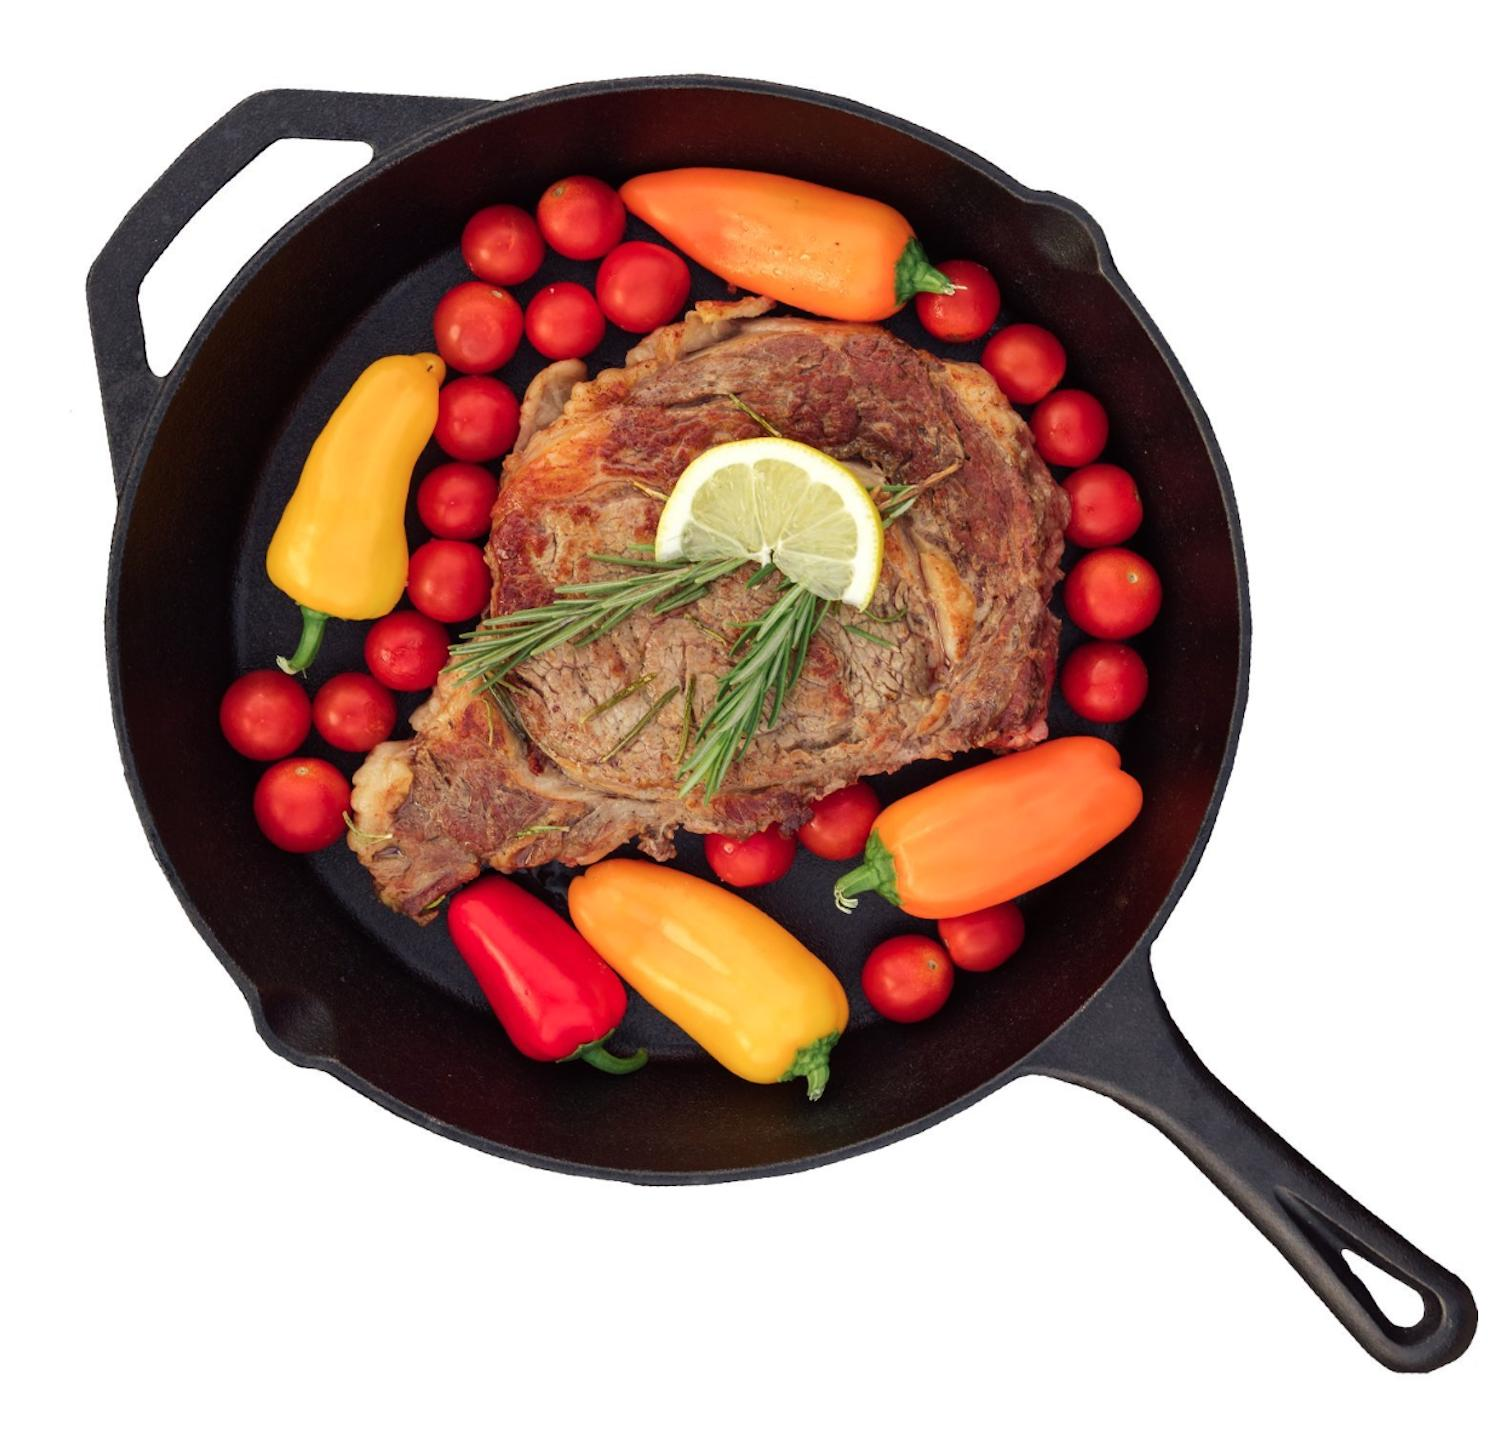 Cast Iron Skillet 12 Inch Oven Cooking Pre Cookware